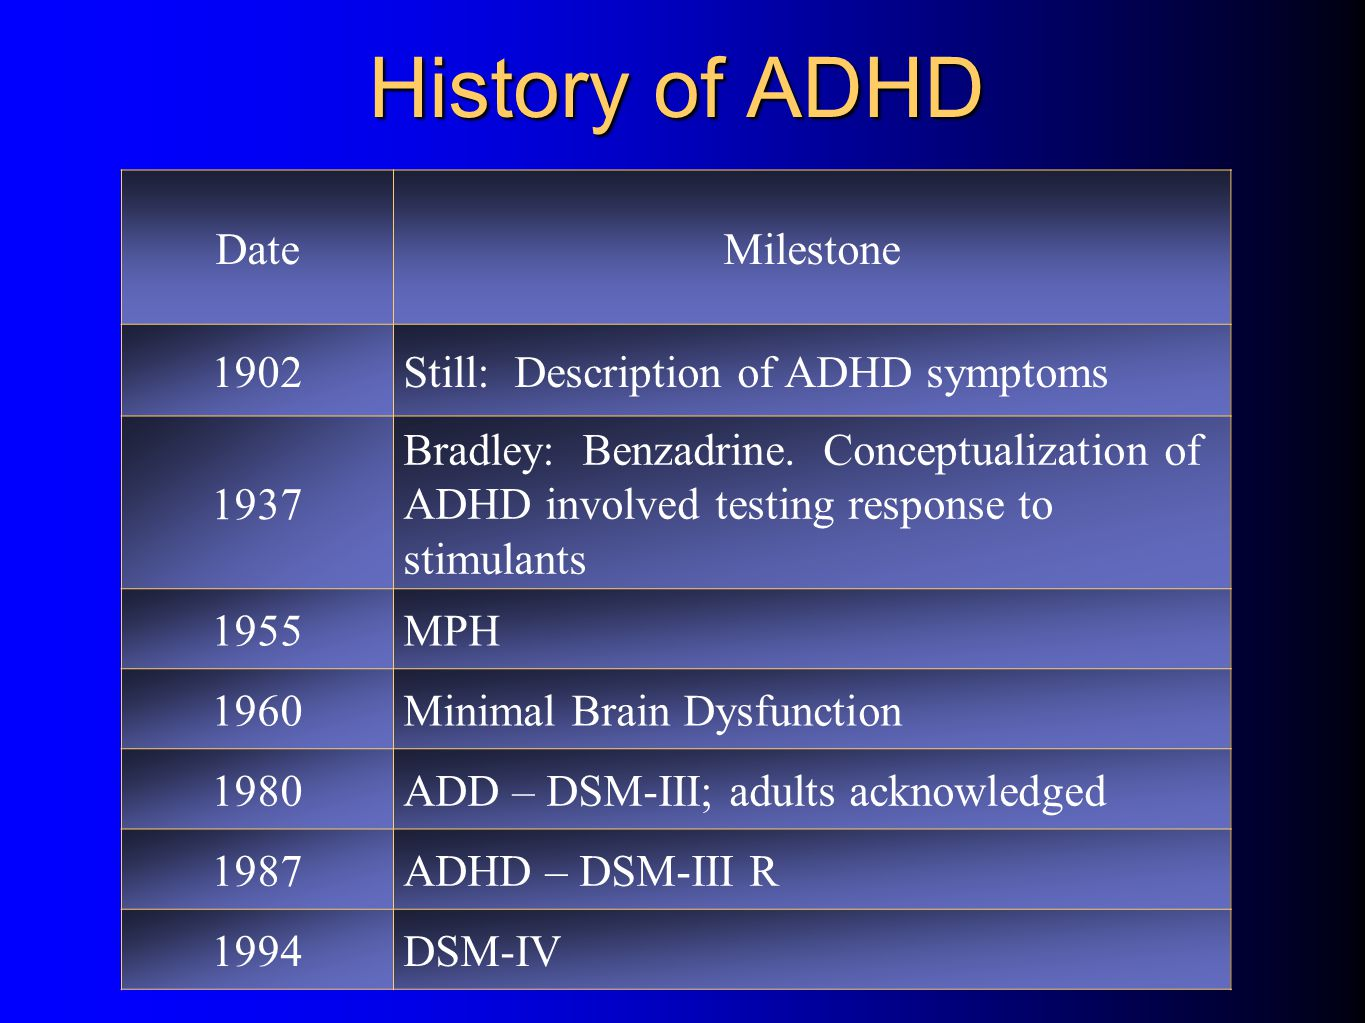 ADHD: Etiology ADHD is a heterogeneous behavioral disorder with multiple possible etiologies ADHD NeuroanatomicNeurochemical CNS insults Genetic origins Environmental factors